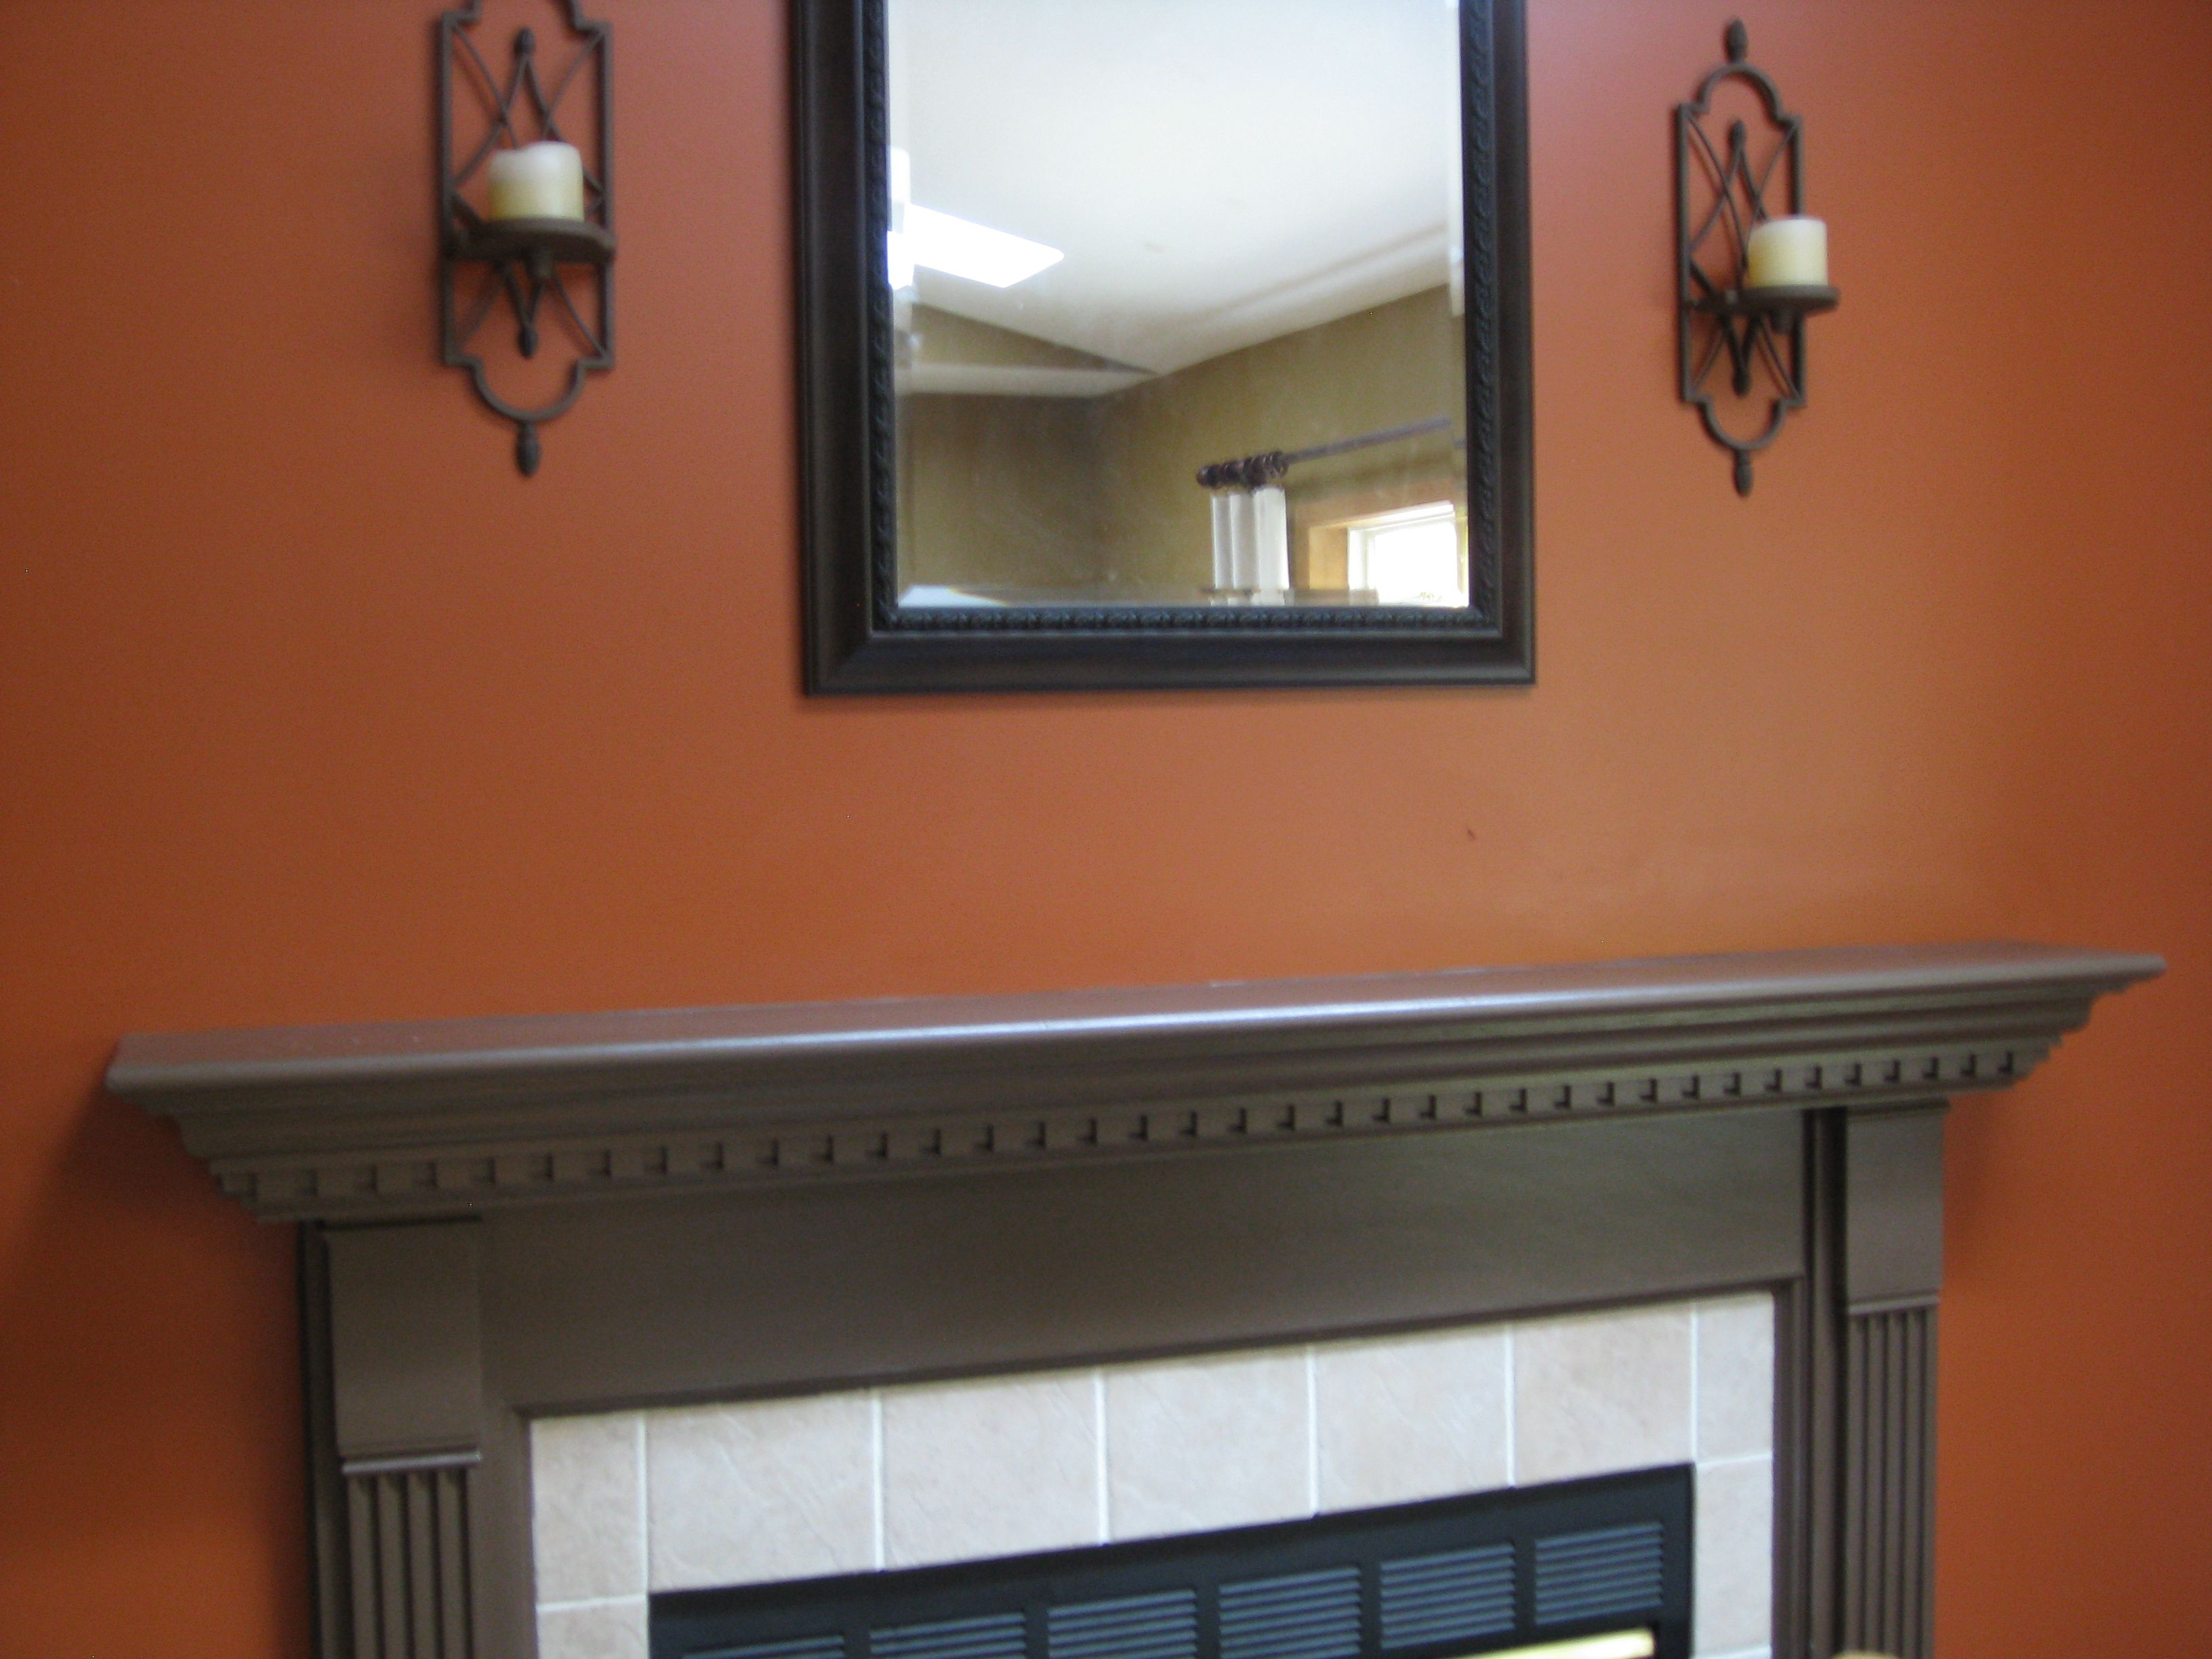 Copper Accent Wall I Painted My Loft A Burnt Orange Color Like This I Was